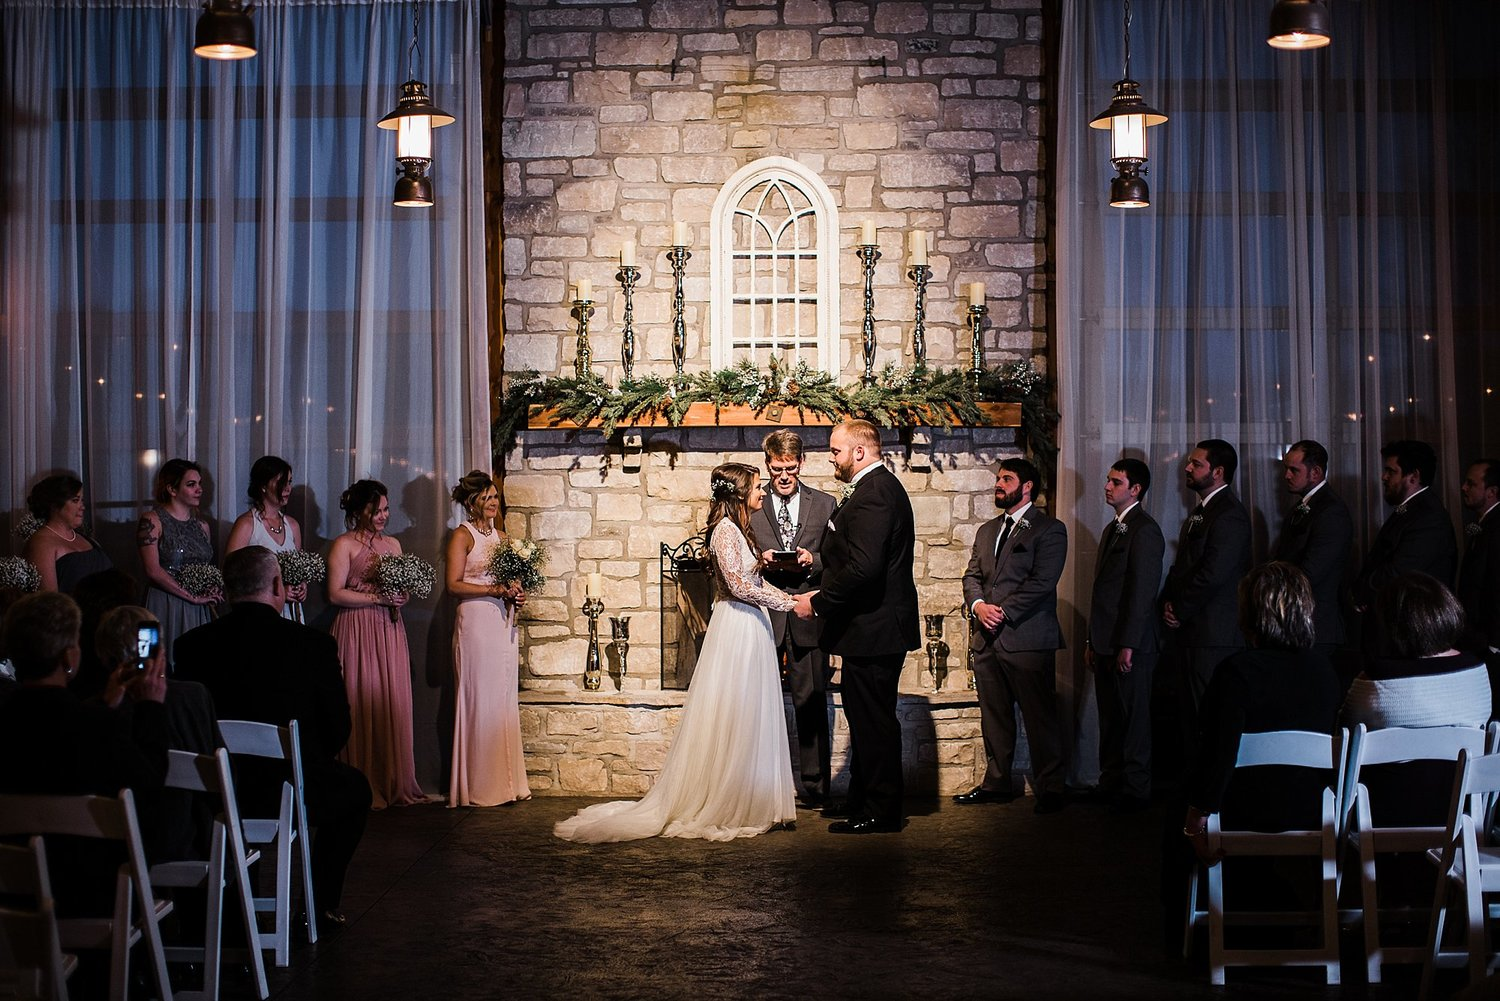 Haue Valley St Louis Wedding Venues